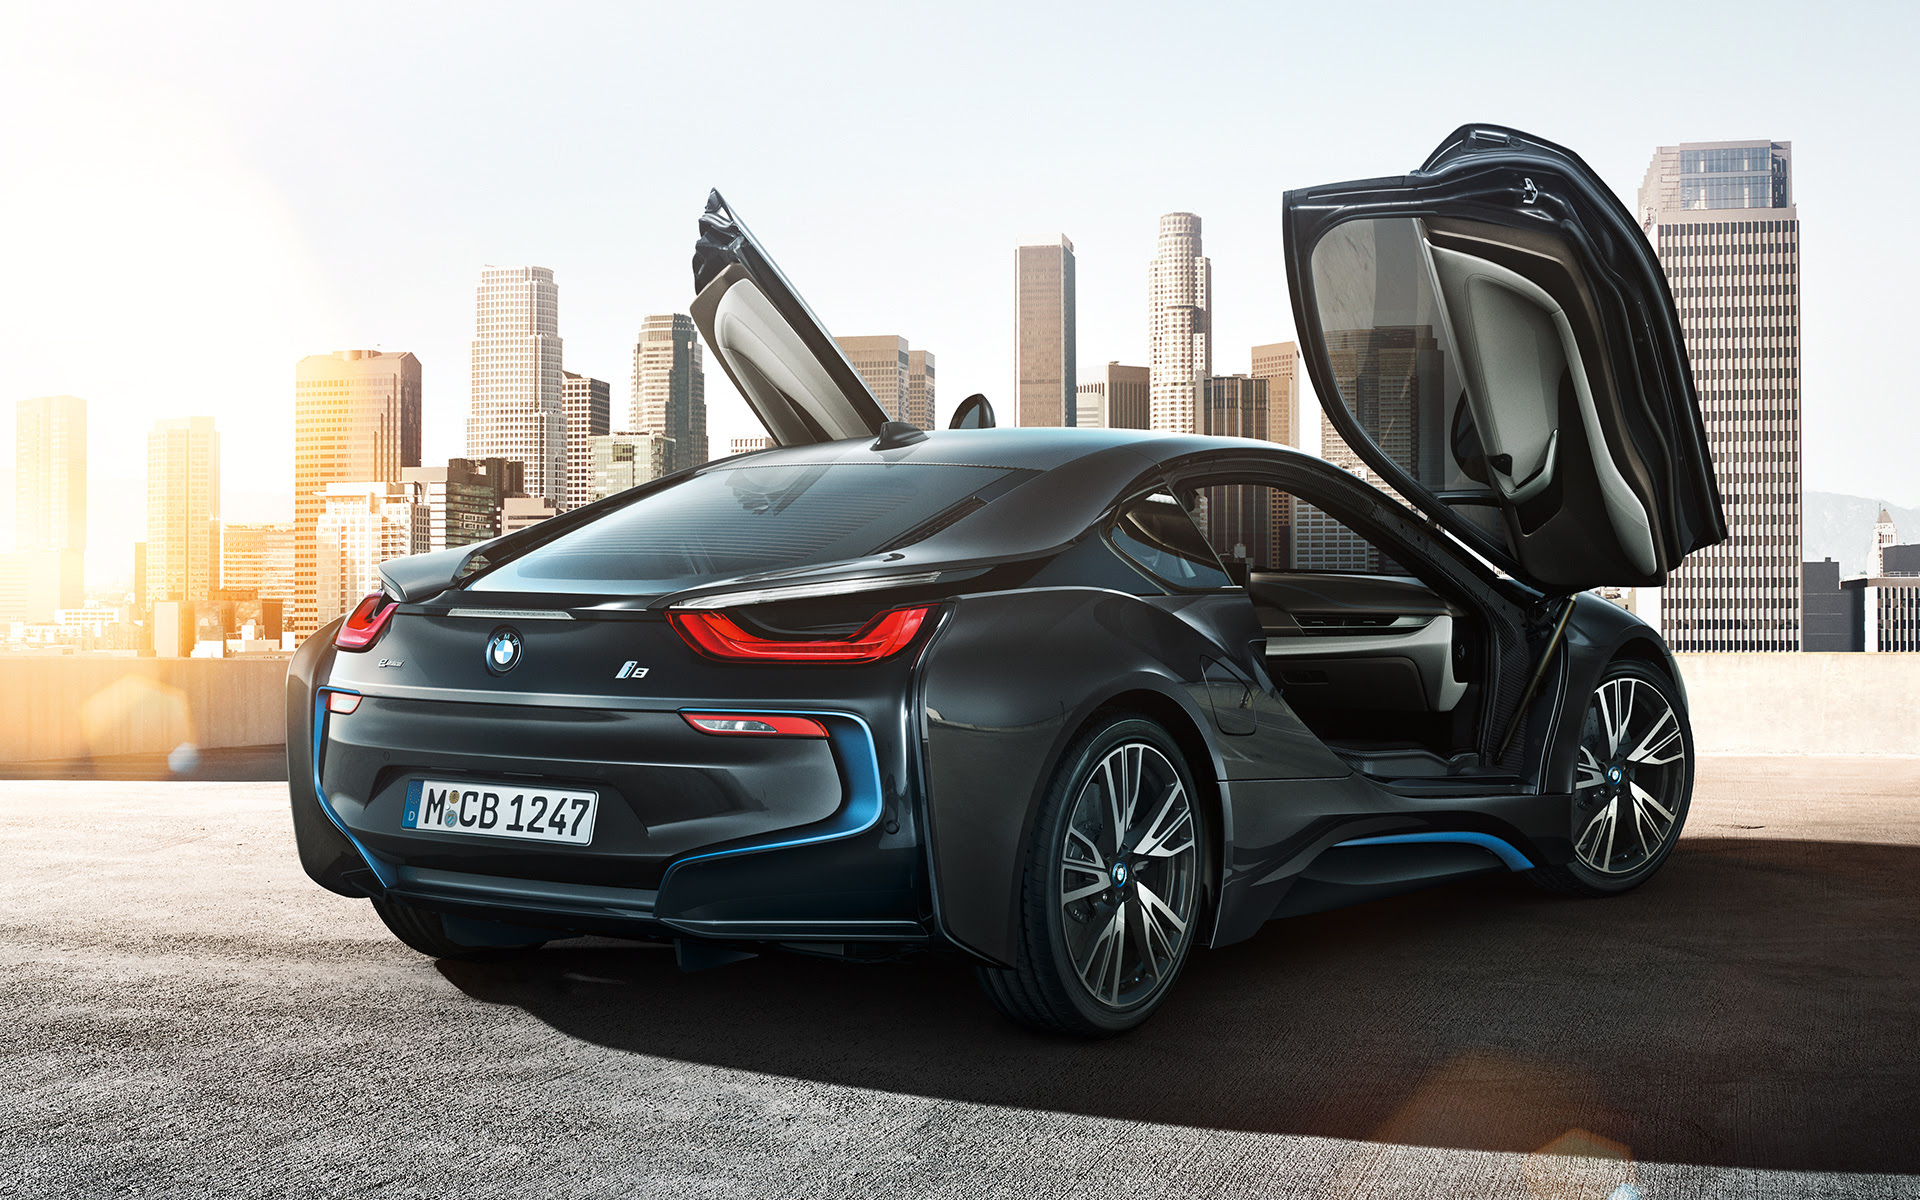 At Launch Time Three Years Ago The BMW I8 Came In Ionic Silver Crystal White And Sophisto Grey Later On Added A Protonic Blue Red